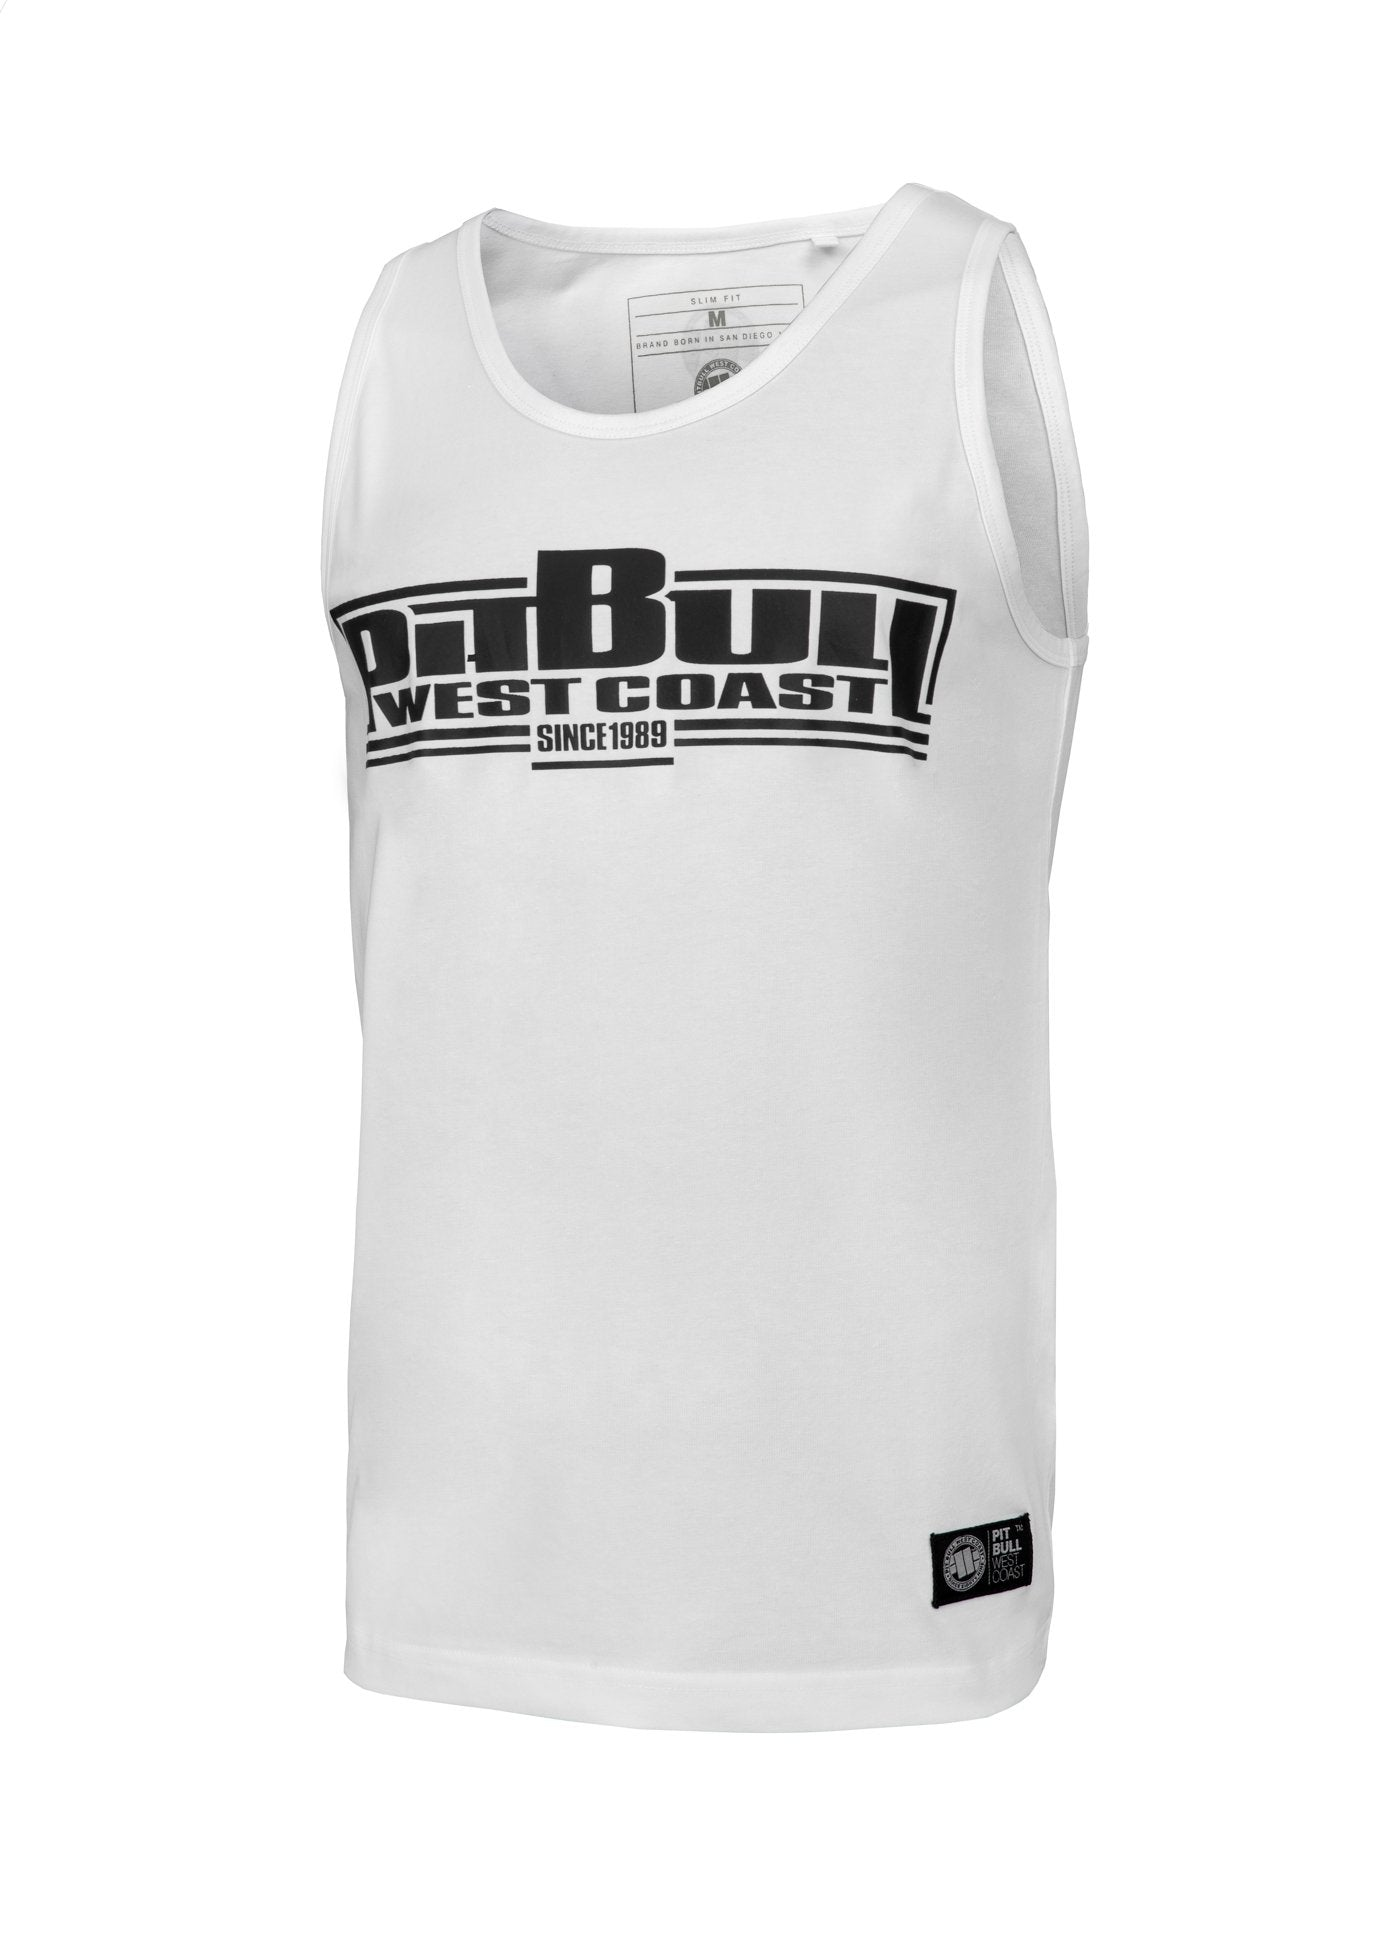 Tank Top Slim Fit Boxing White - Pitbull West Coast U.S.A.